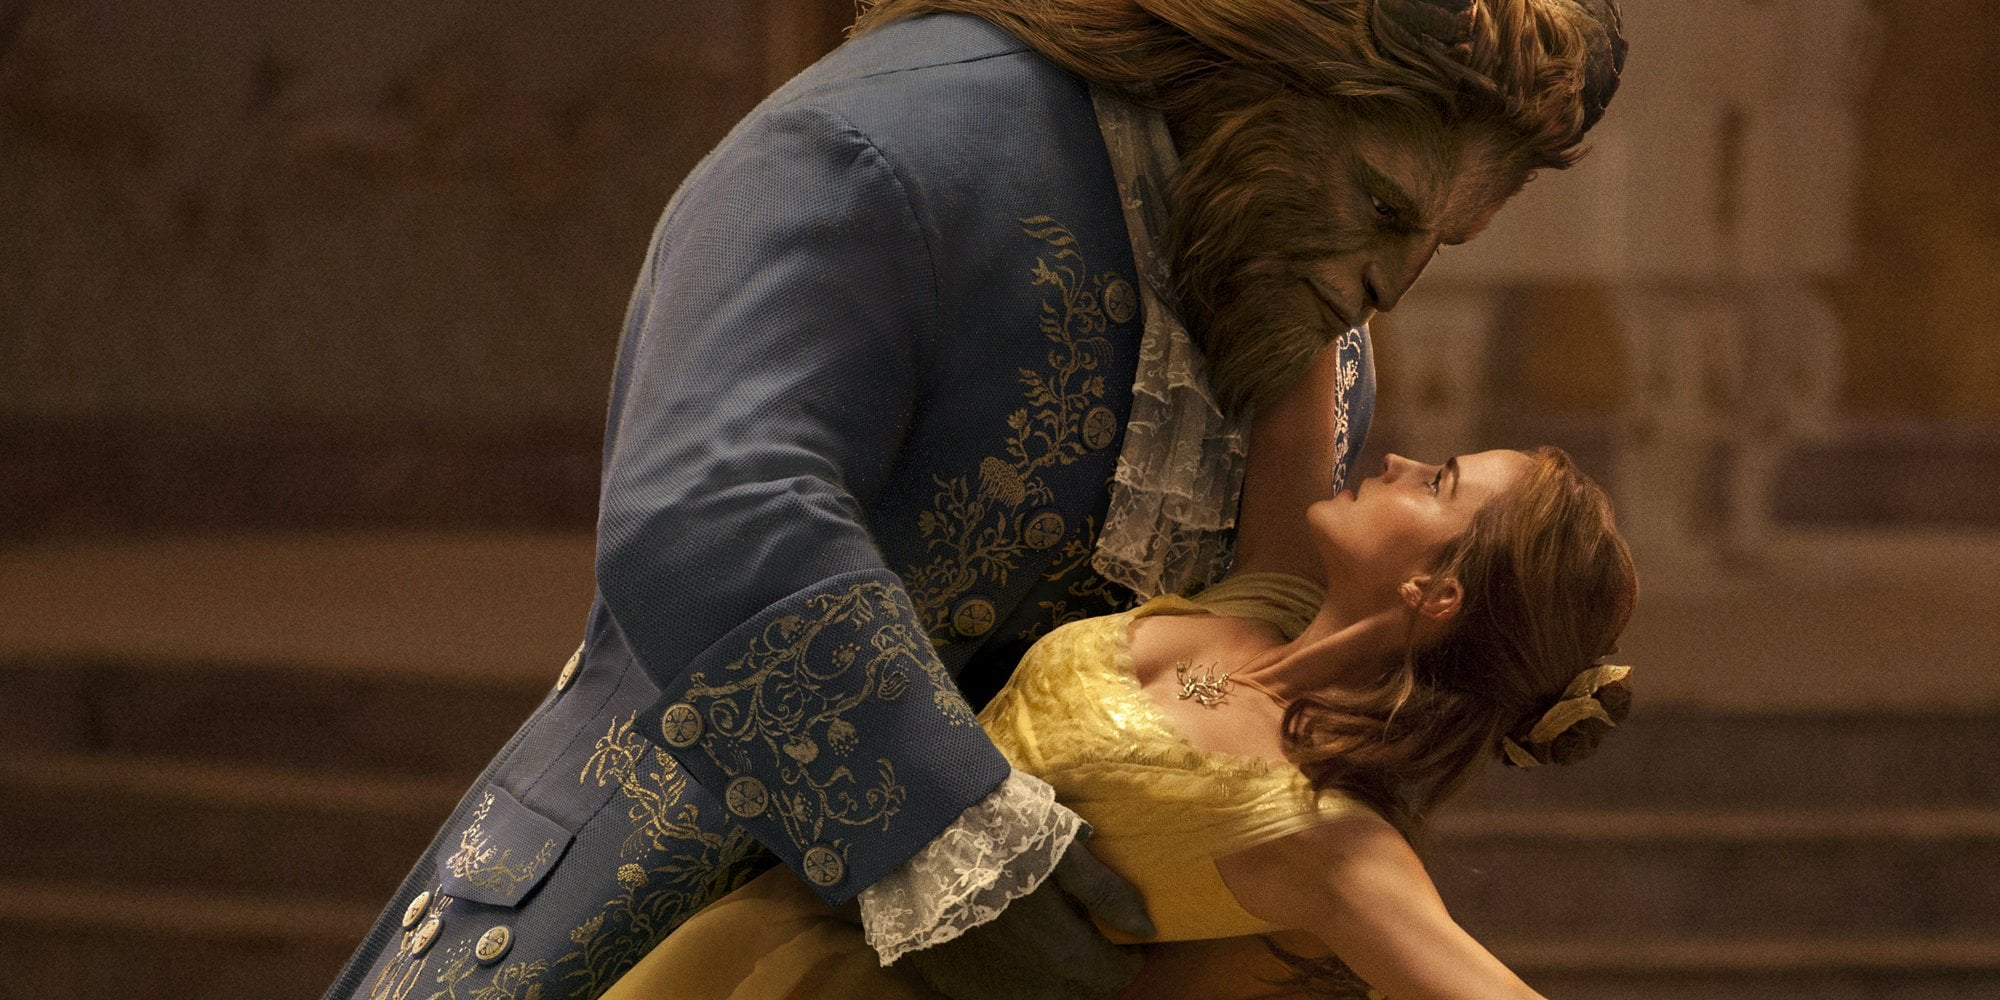 A Tale as Old As Time – Beauty and the Beast Review